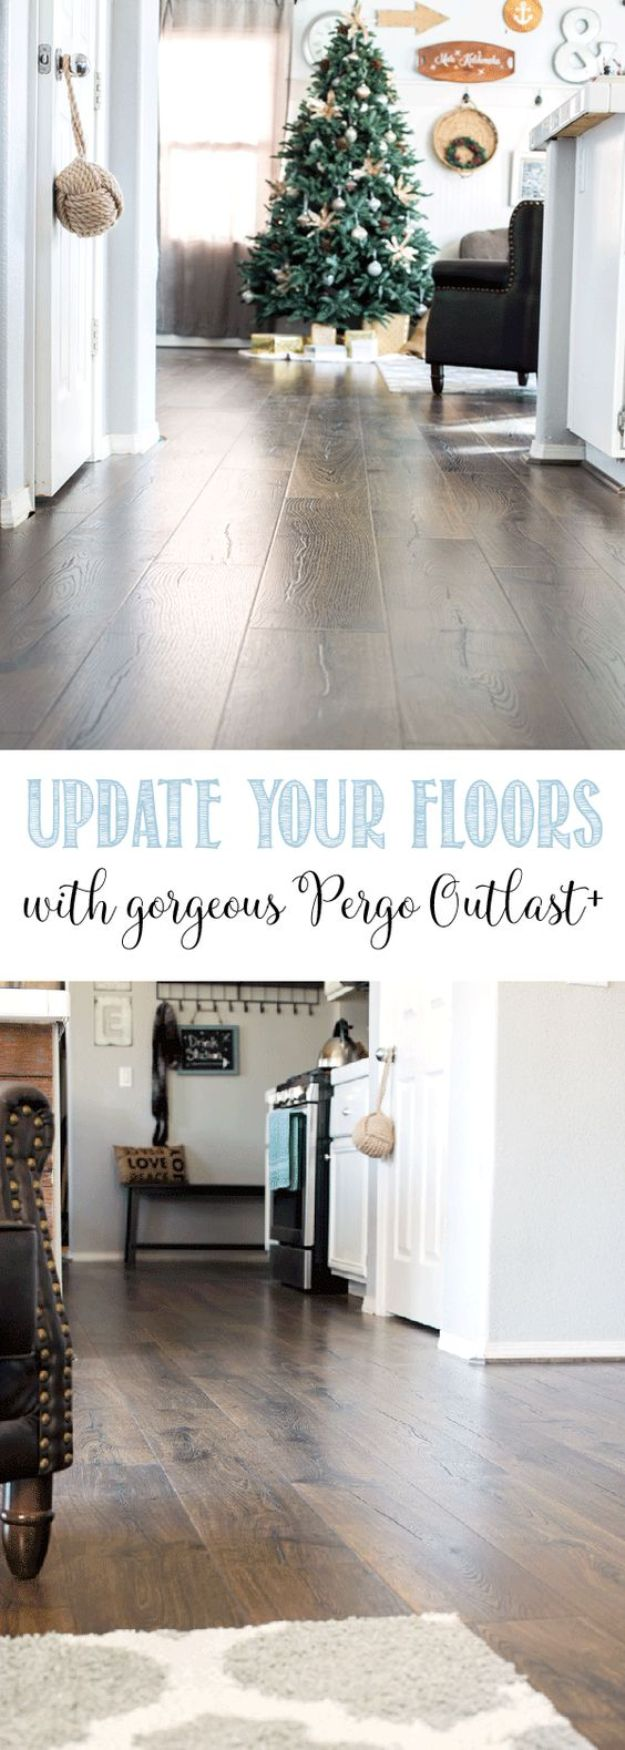 DIY Flooring Projects - Update Your Floors With Gorgeous Pergo Outlast - Cheap Floor Ideas for Those On A Budget - Inexpensive Ways To Refinish Floors With Concrete, Laminate, Plywood, Peel and Stick Tile, Wood, Vinyl - Easy Project Plans and Unique Creative Tutorials for Cool Do It Yourself Home Decor #diy #flooring #homeimprovement